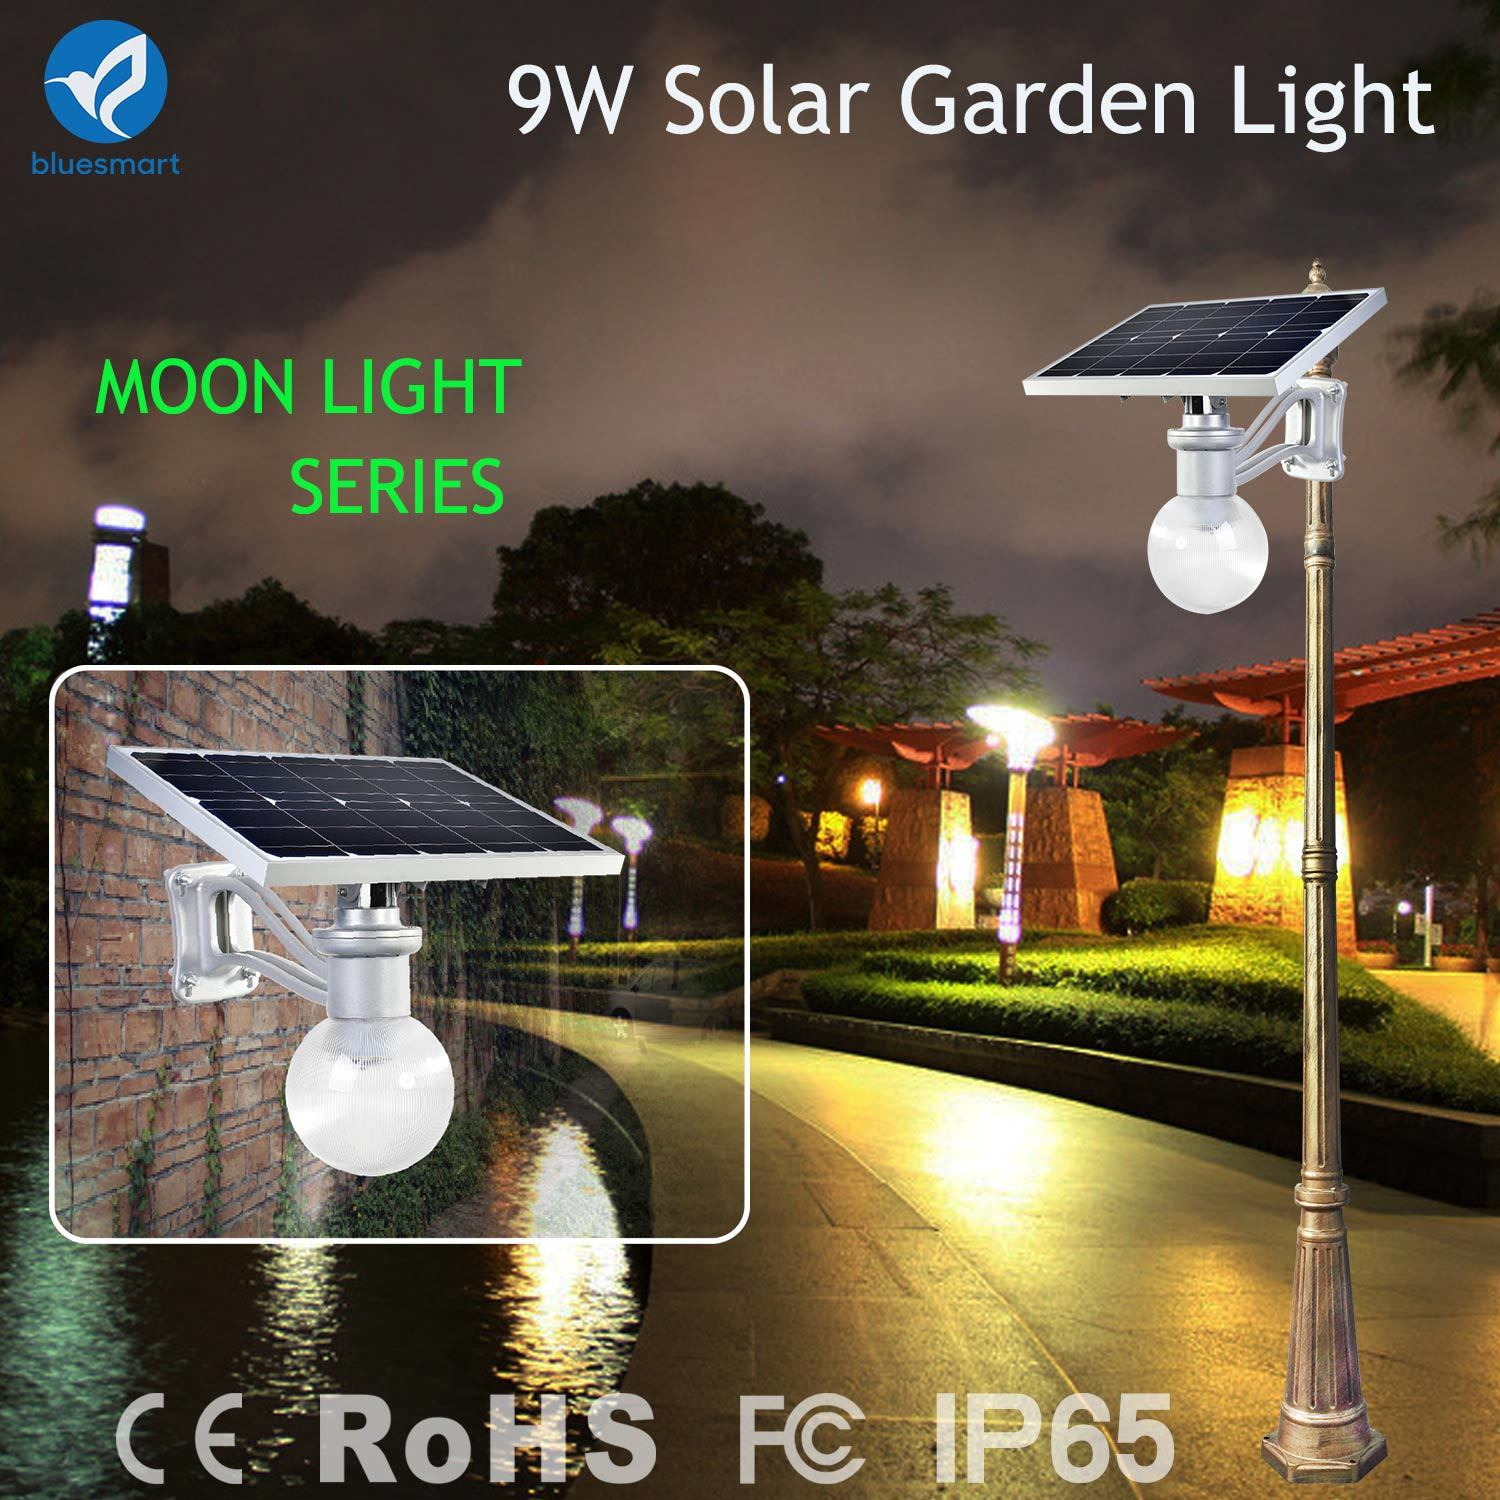 China 9W Solar Outdoor LED Street Light Garden Lamp with Motion ...